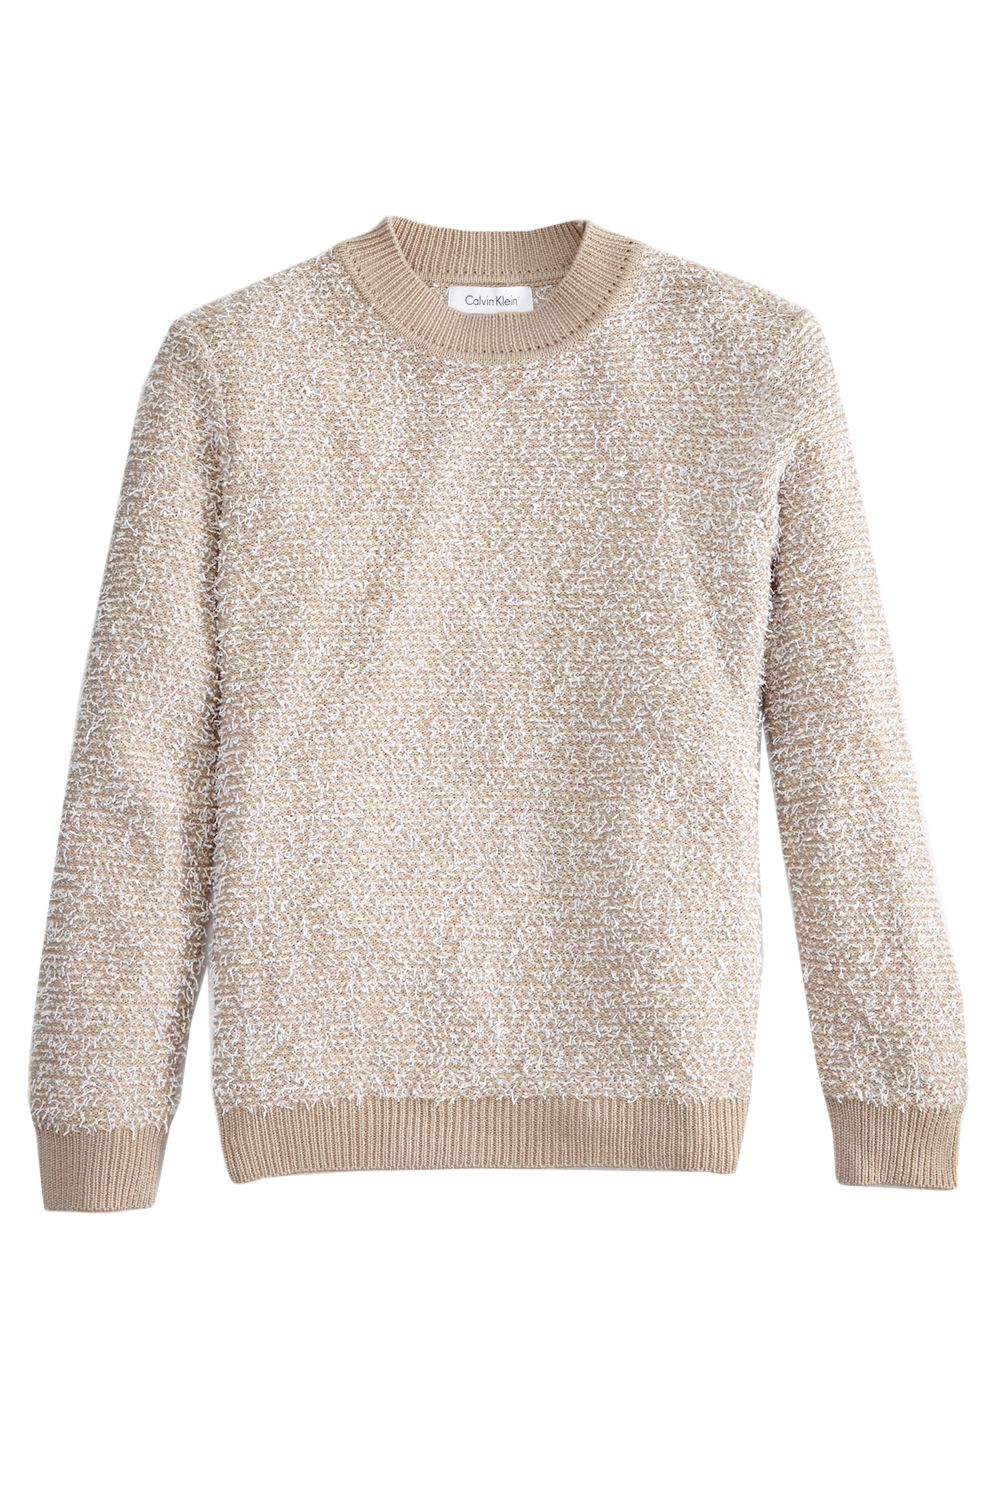 """<p><strong>Anxiety:</strong> Getting cold and itchy and all-around uncomfortable.</p><p><strong>Solution: </strong>Bring a super cozy sweater that doubles as a comfort object (you know, like a teddy bear), but doesn't compromise your style.</p><p><em>Calvin Klein Sweater; $TK, <a href=""""http://www.calvinklein.com/shop/en/ck/search/womens-sweaters"""" target=""""_blank"""">calvinklein.com</a> NEED TO ADD PRICE</em></p>"""